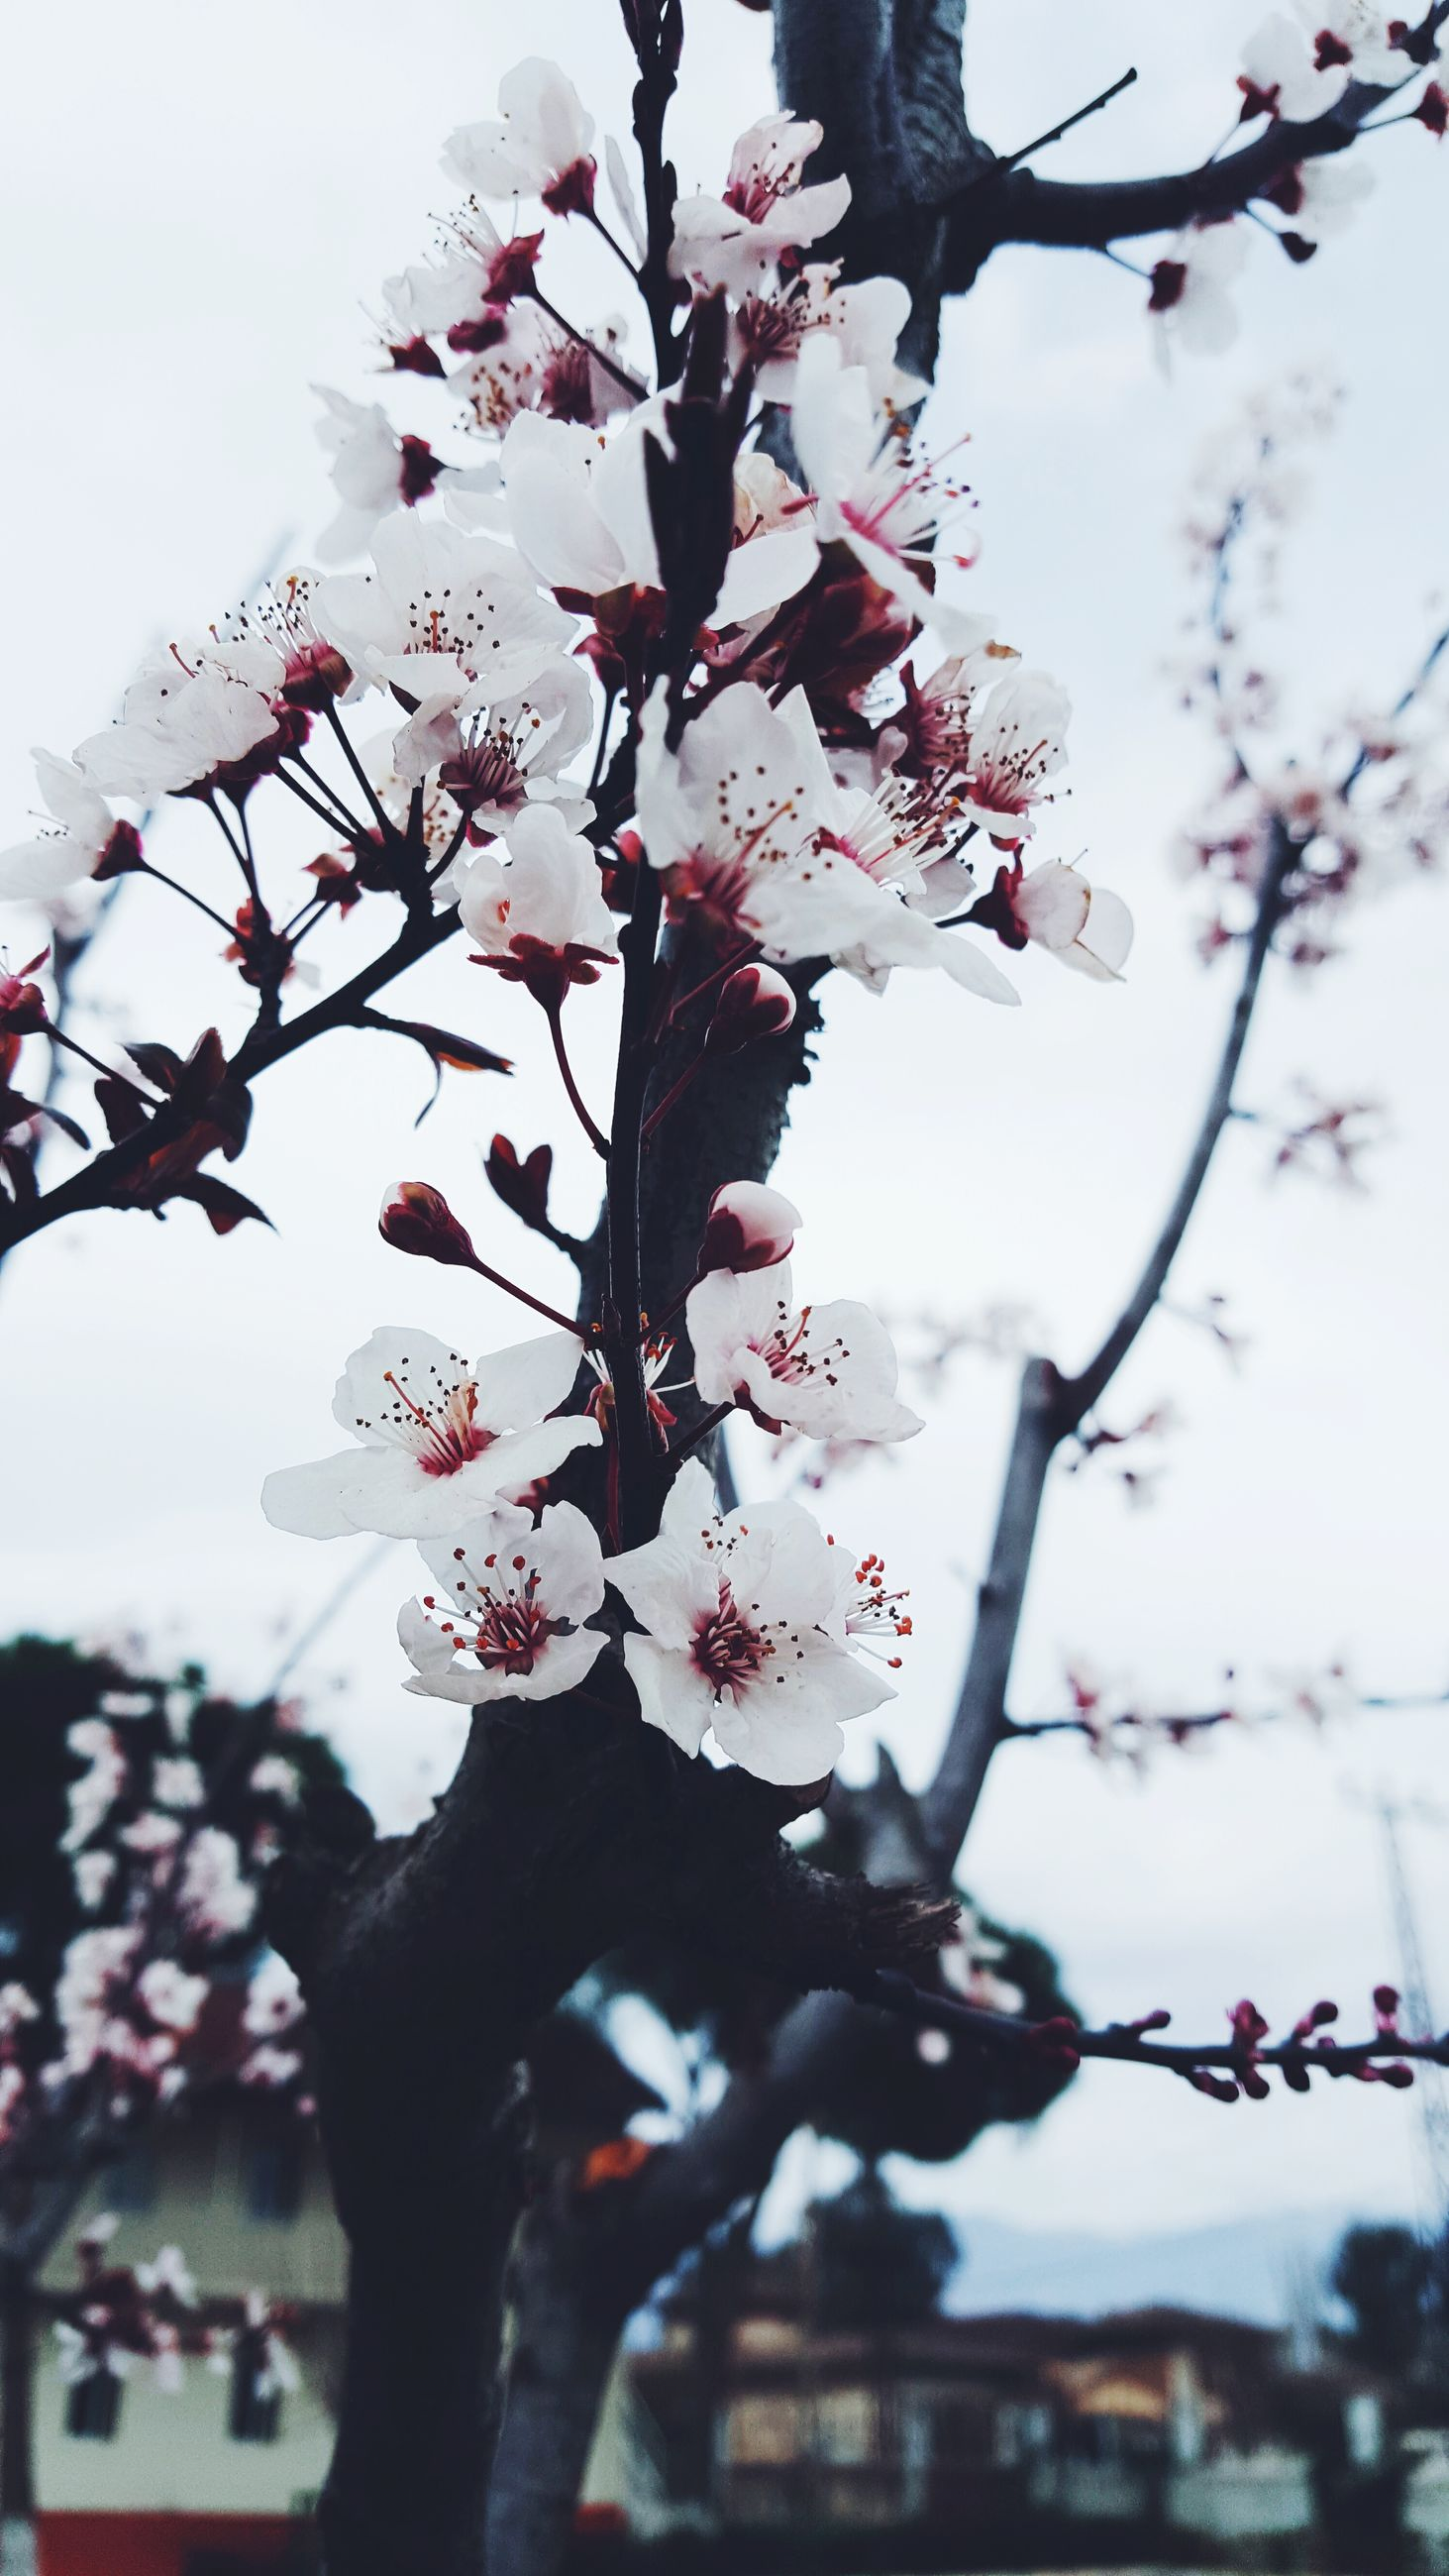 flower, tree, beauty in nature, blossom, fragility, growth, nature, springtime, freshness, branch, apple blossom, no people, white color, day, outdoors, close-up, spring, sky